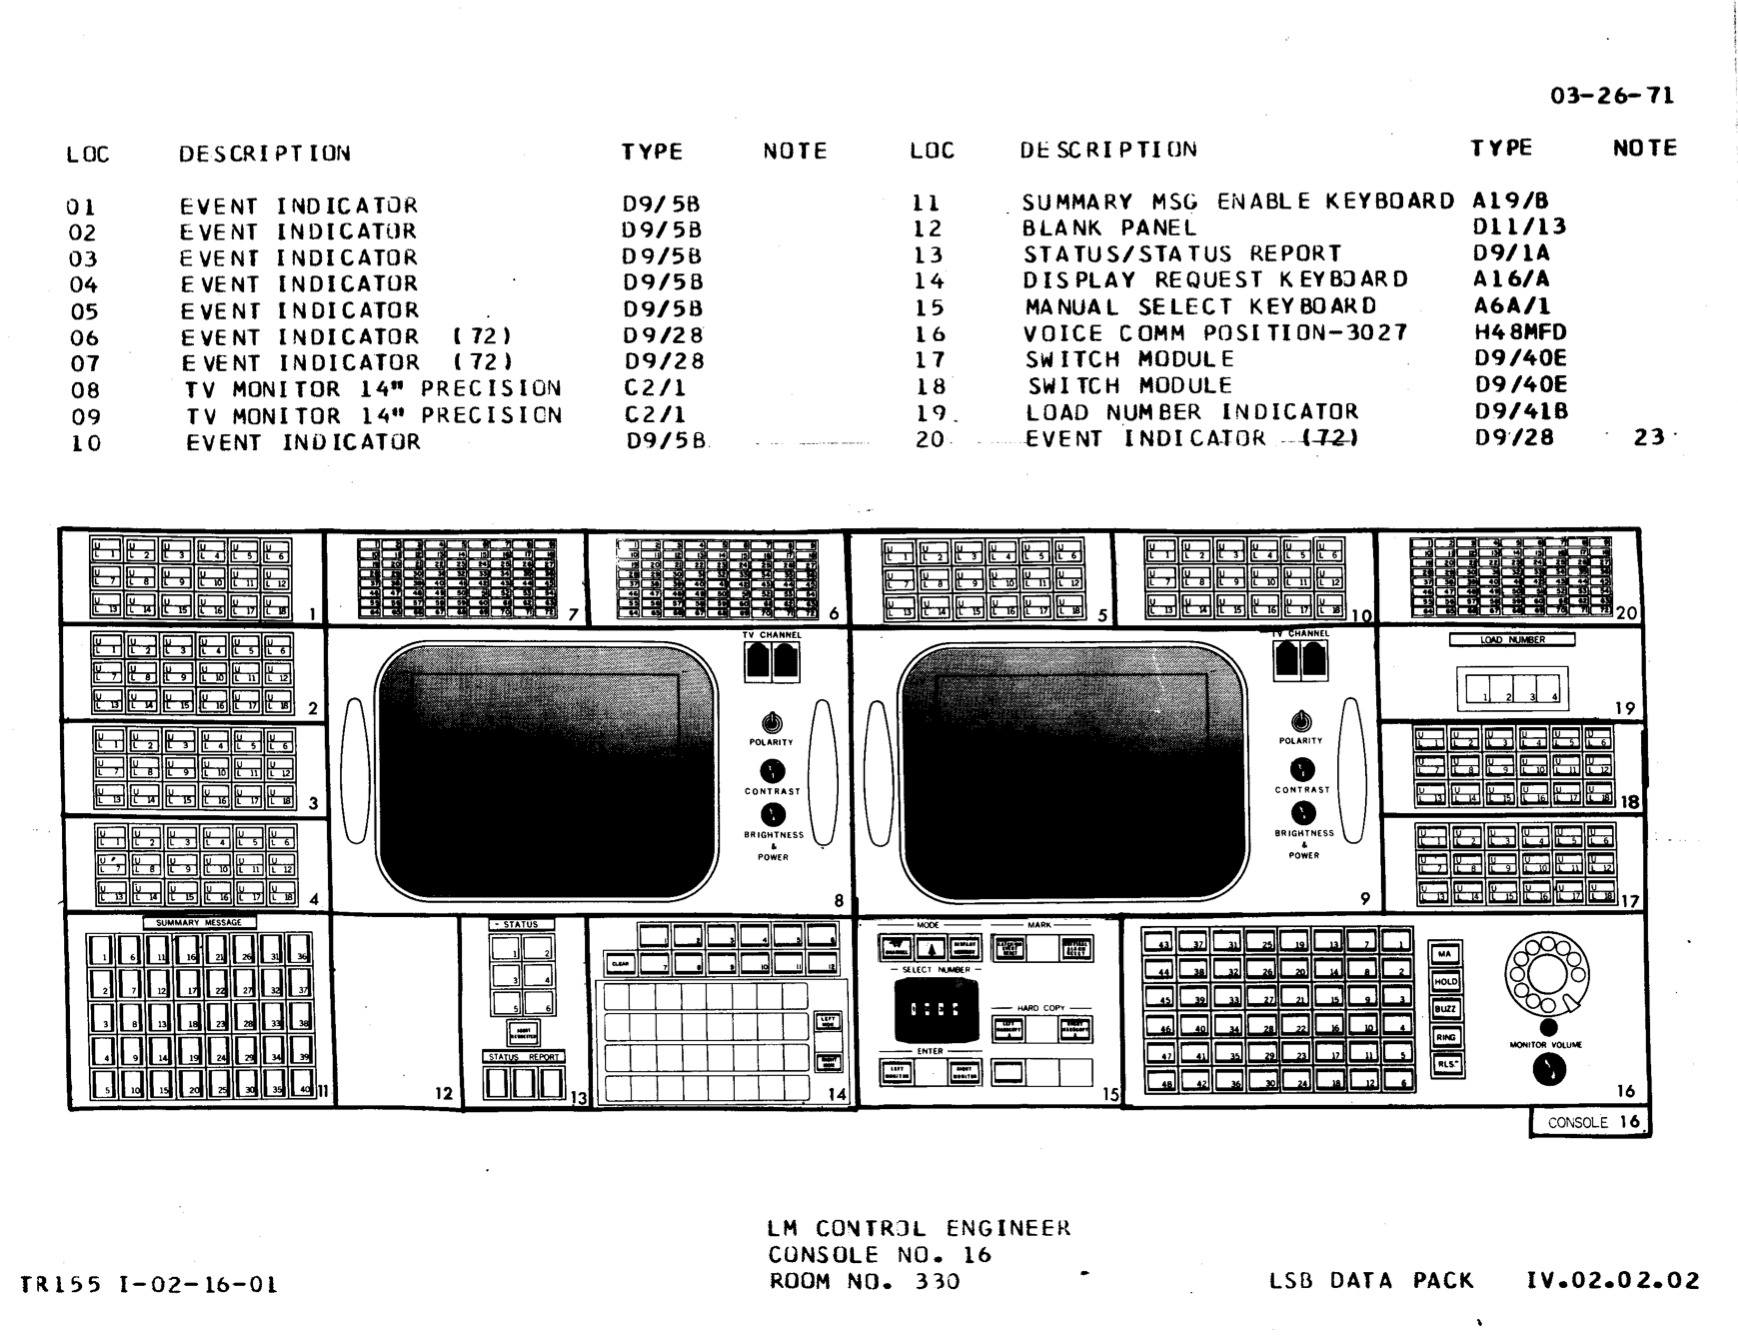 CONTROL console diagram, Apollo configuration